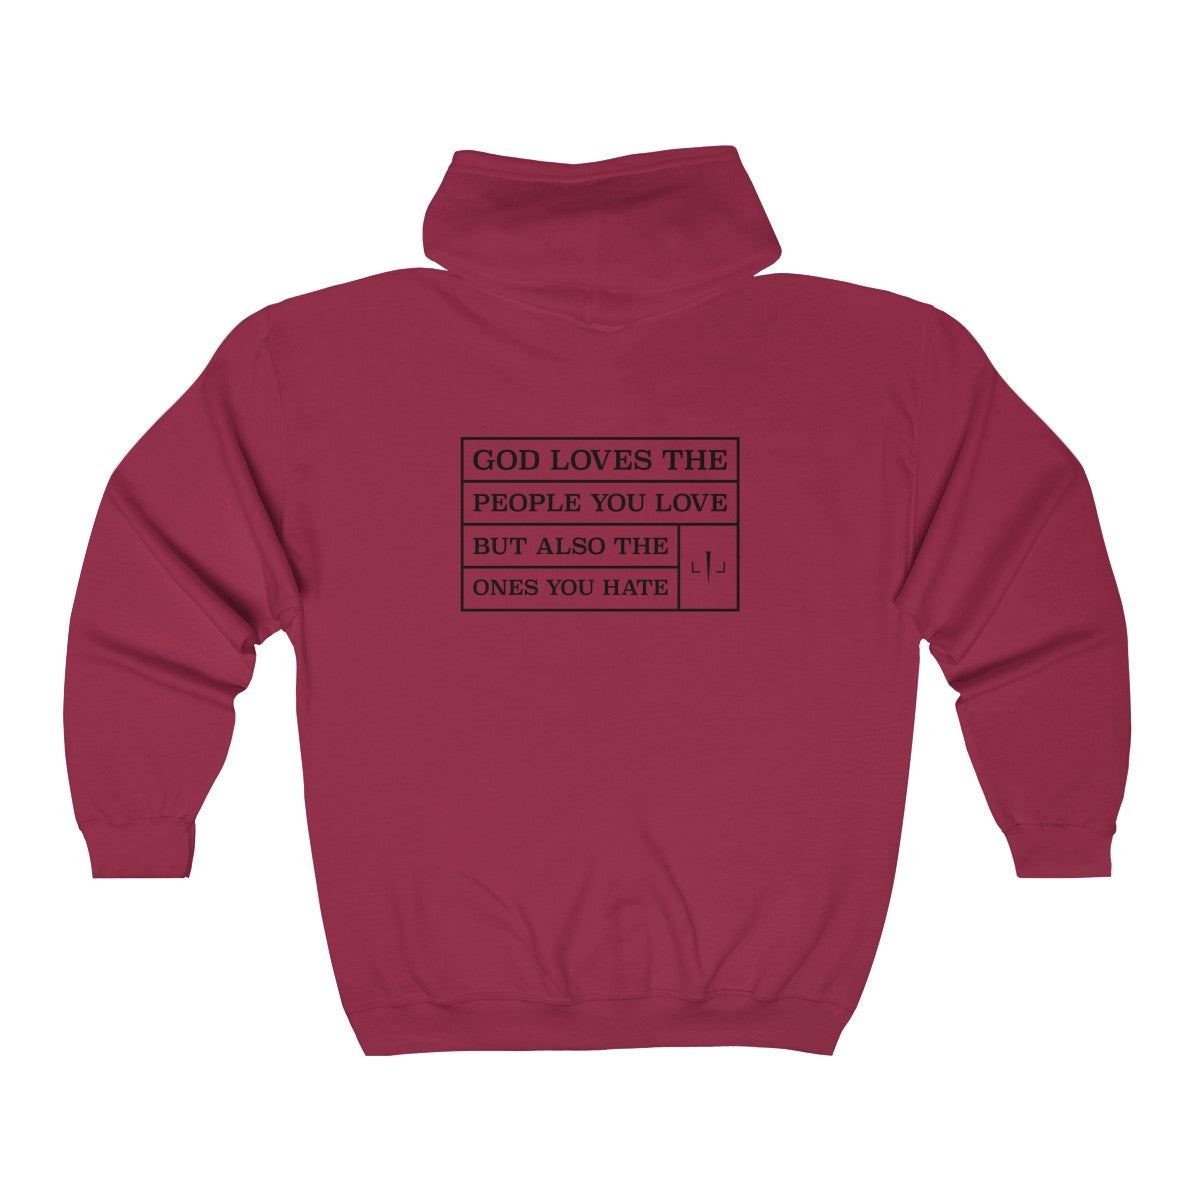 God Loves The People You Love But Also The Ones You Hate Unisex Heavy Blend Full Zip Hooded Sweatshirt - Print on the back